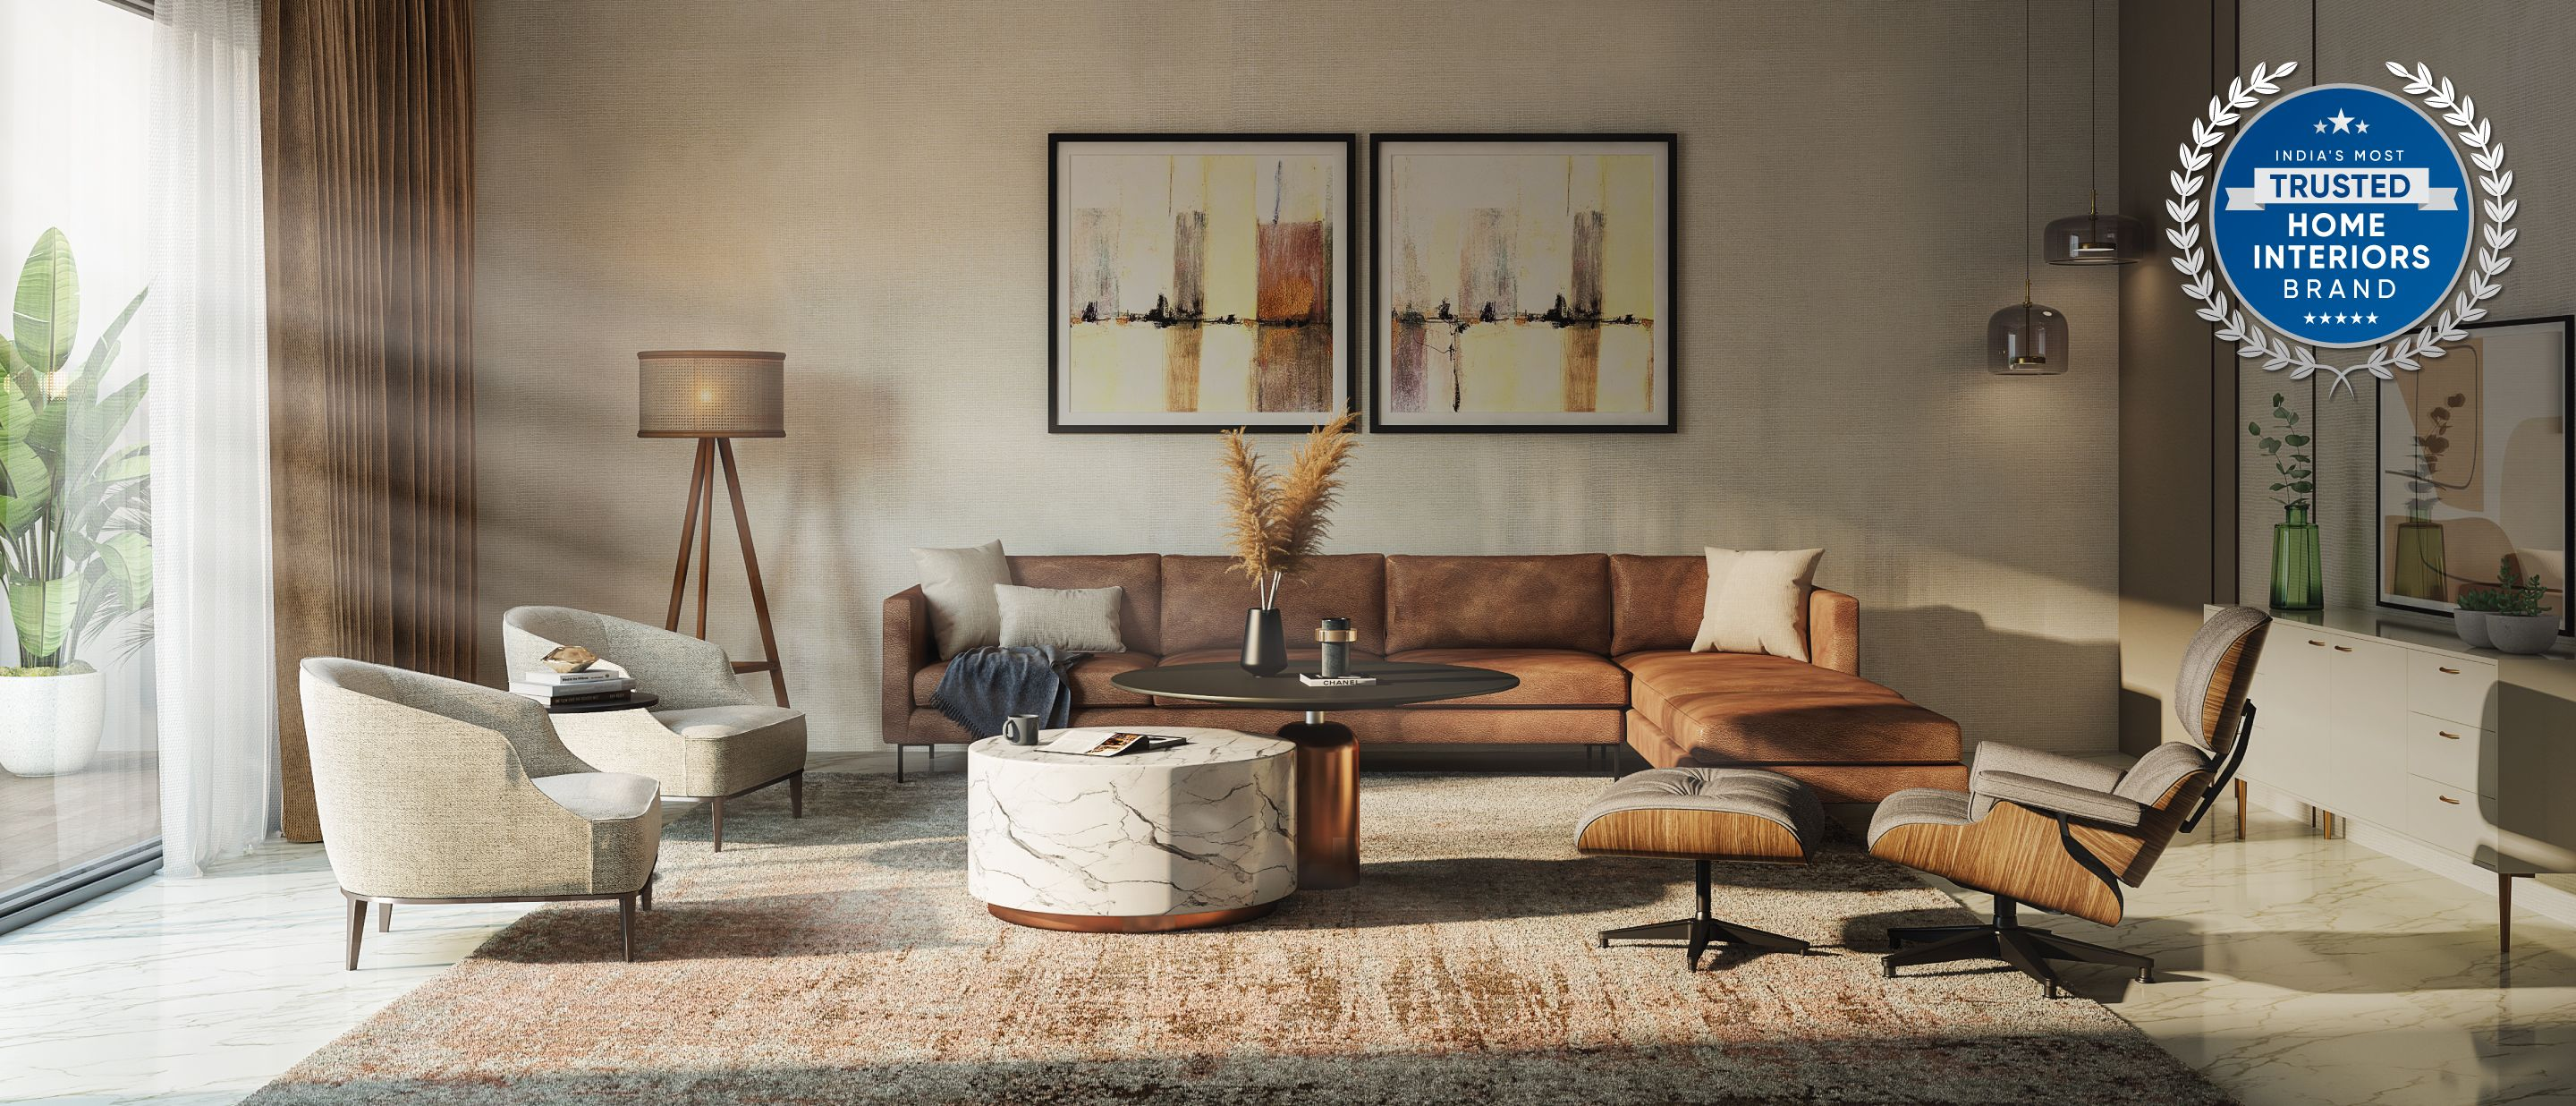 Get your dream home interiors done safely